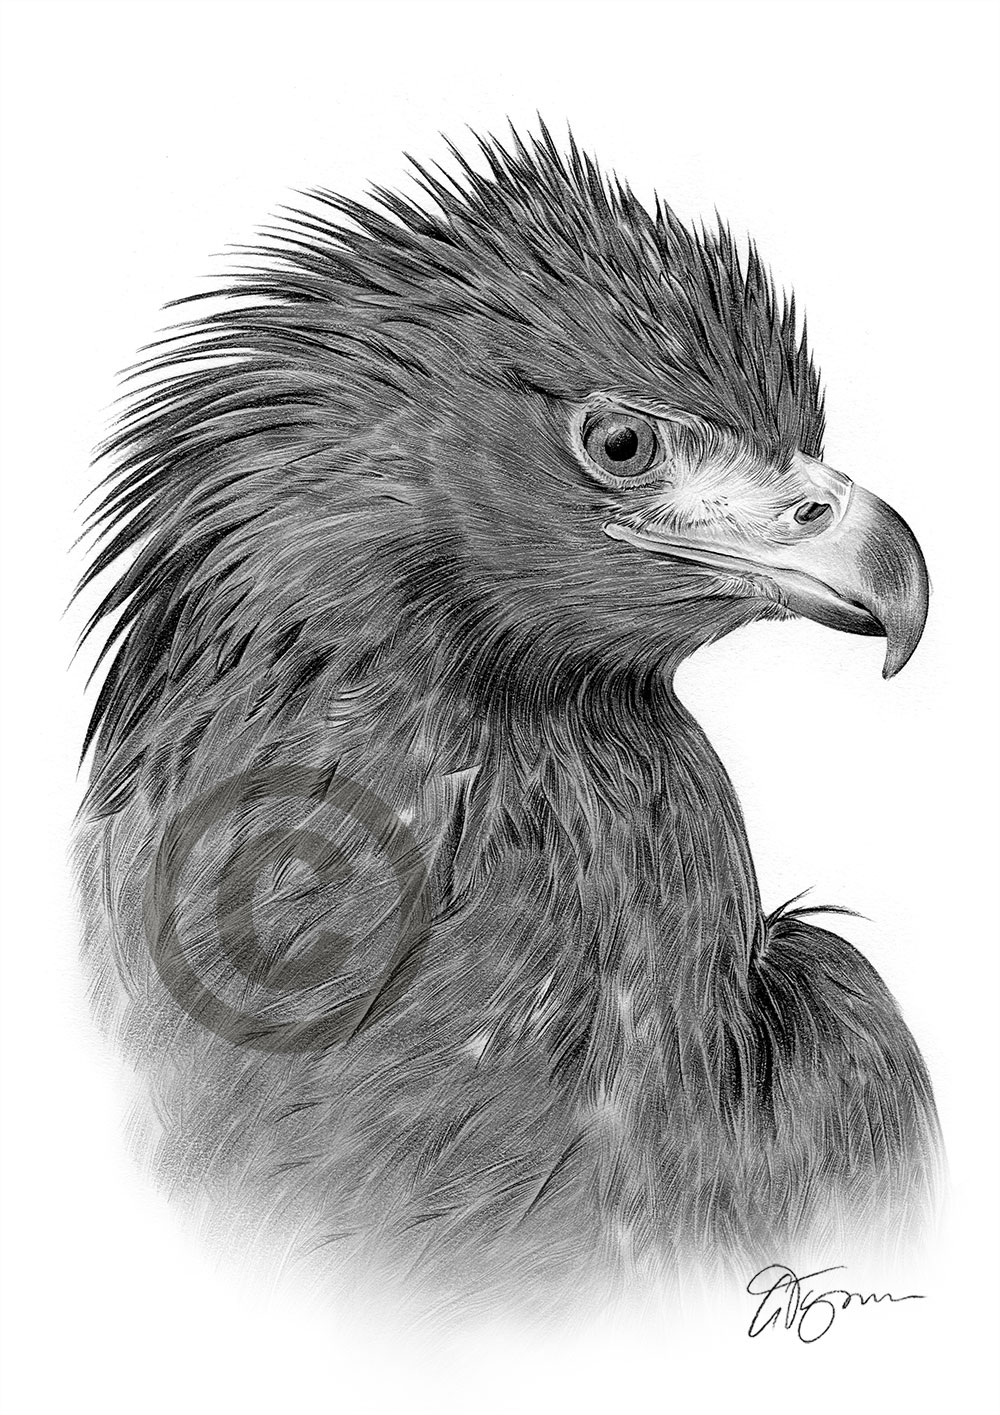 Adult Golden Eagle pencil drawing by artist Gary Tymon